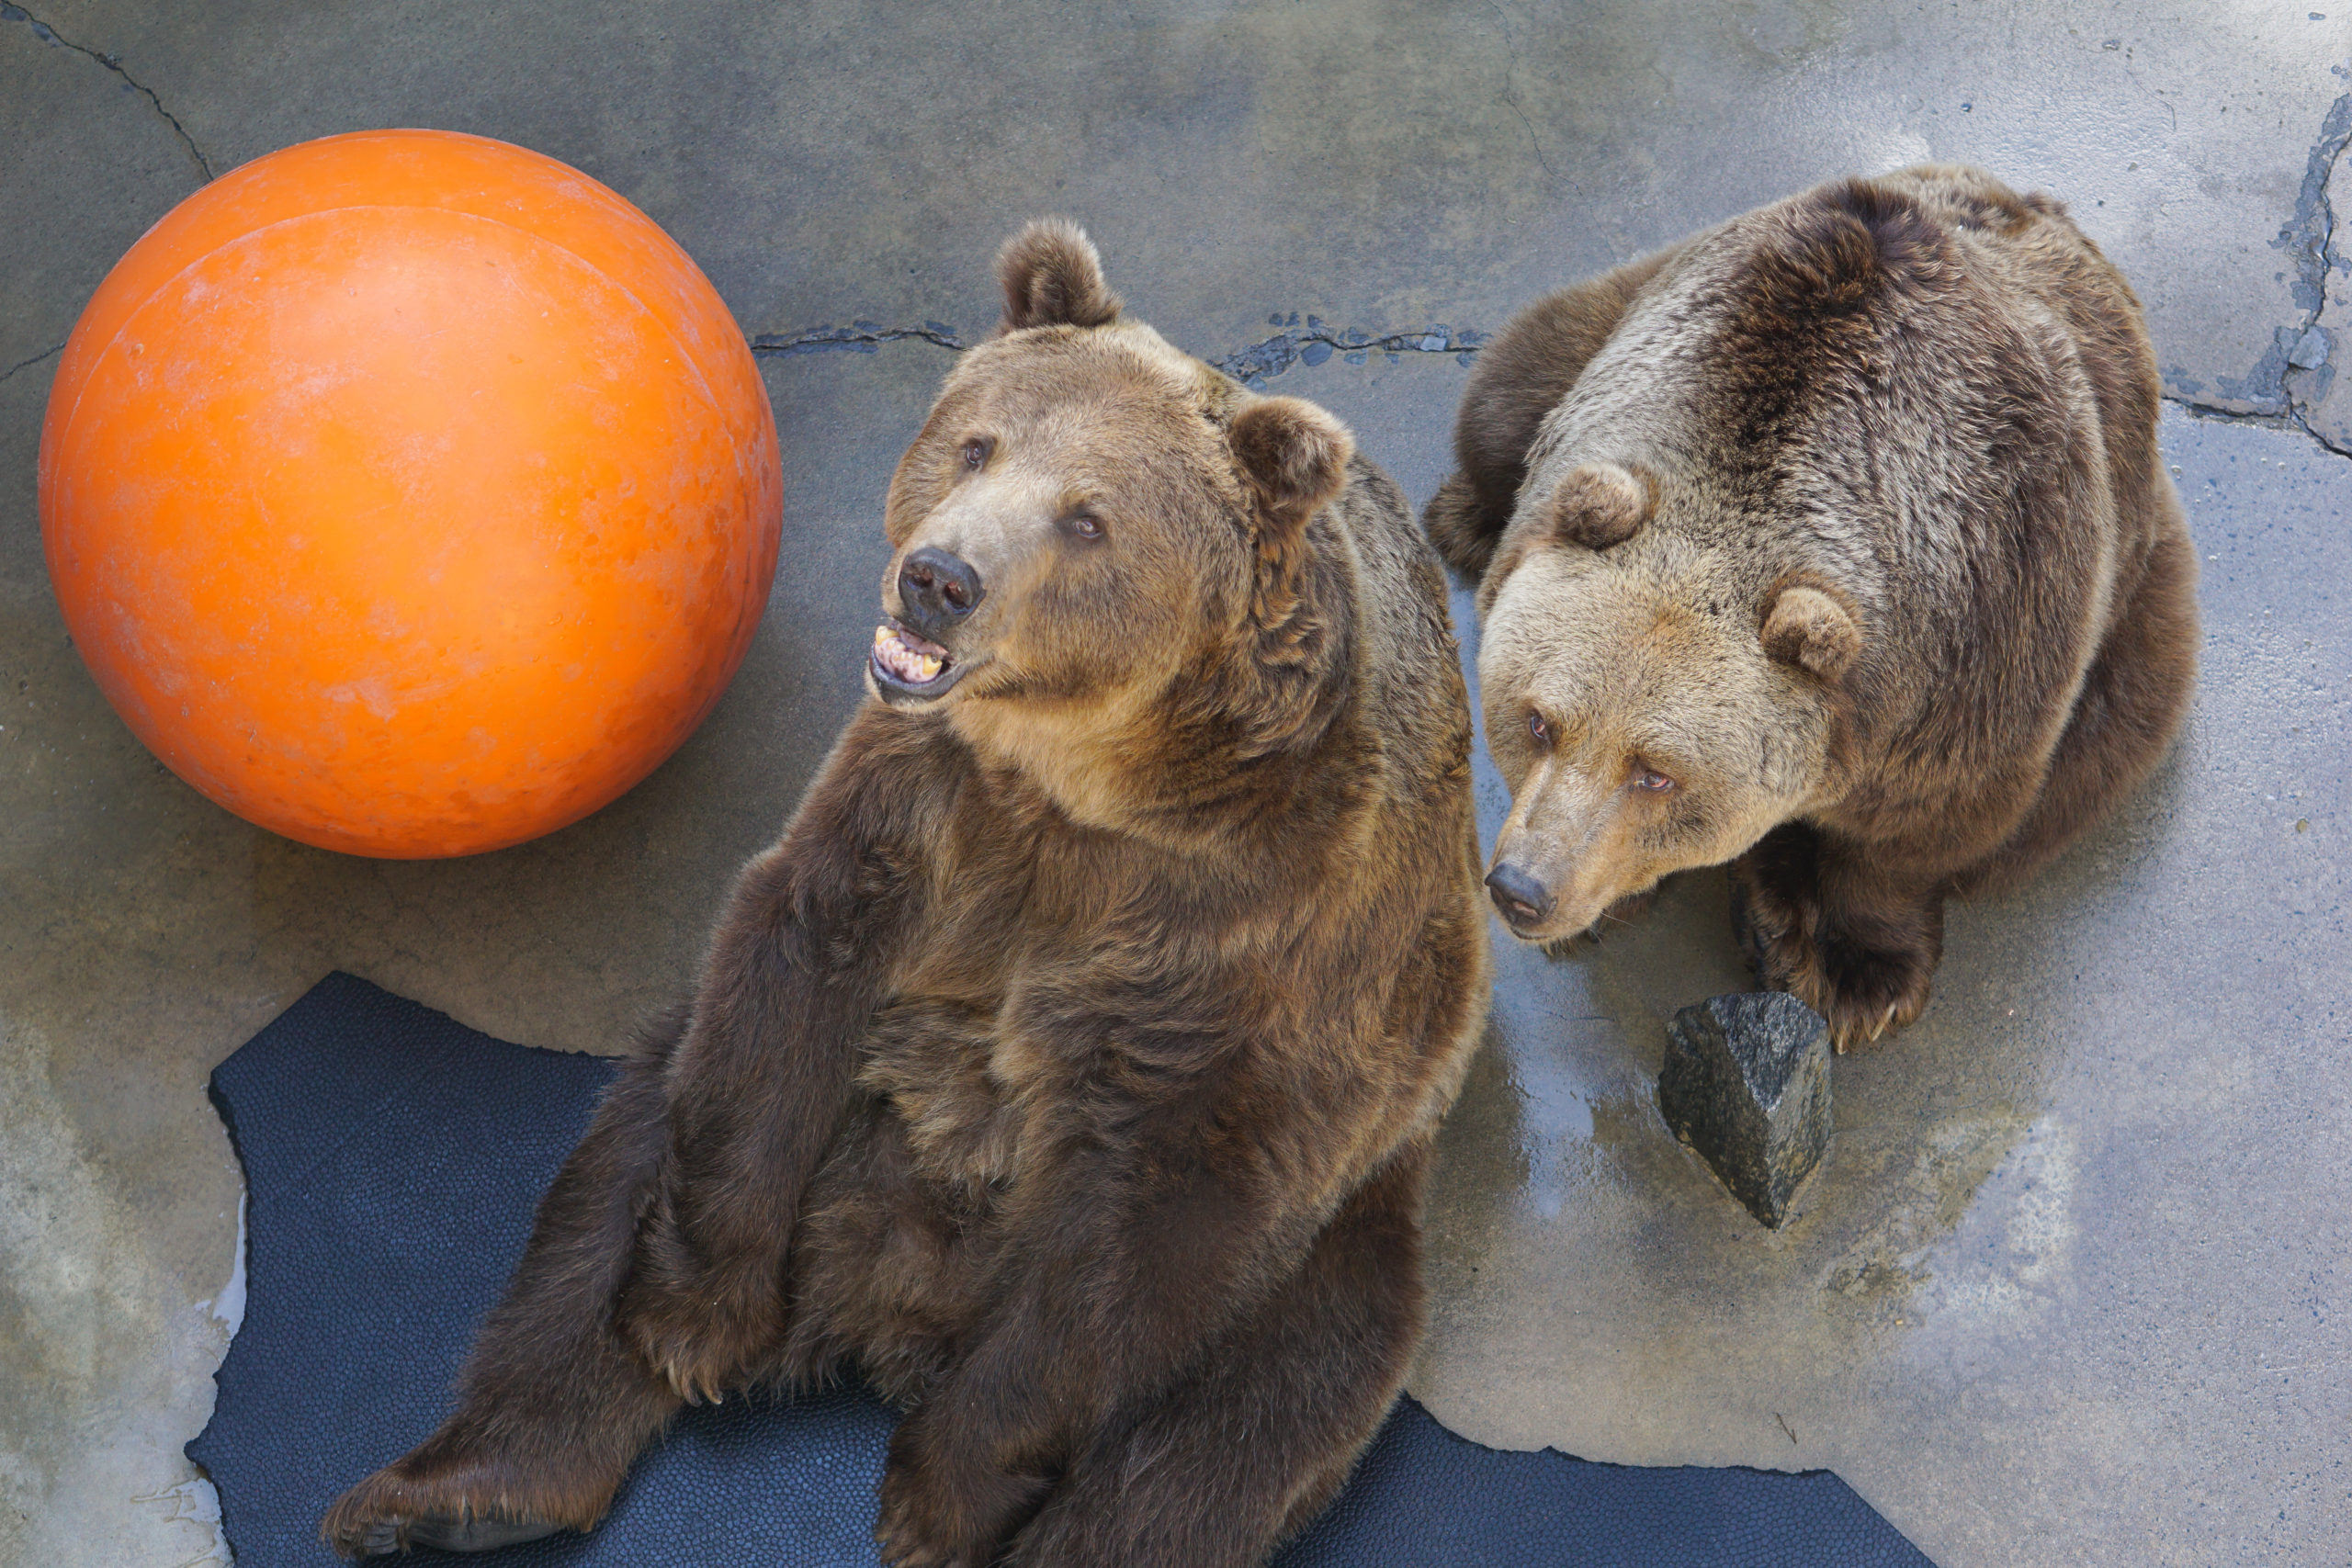 Two brown bears begging for food in their concrete pit